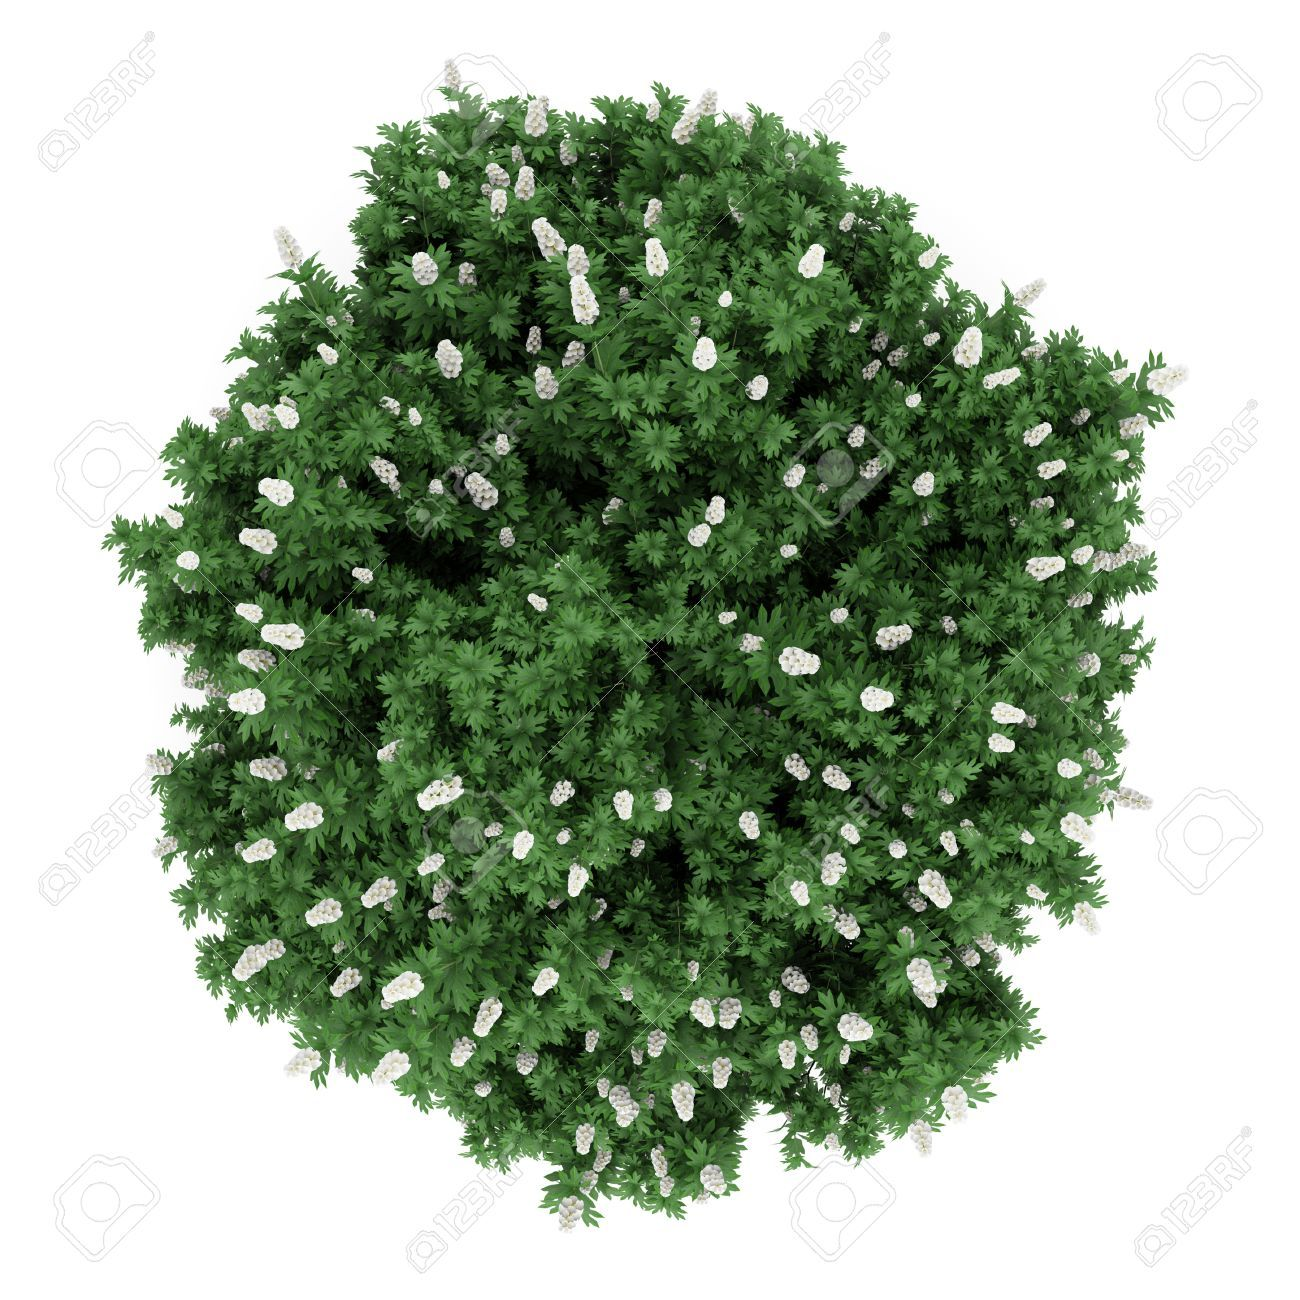 Shrub Top View Google Search Top View Trees Top View Tree Photoshop Plant Texture